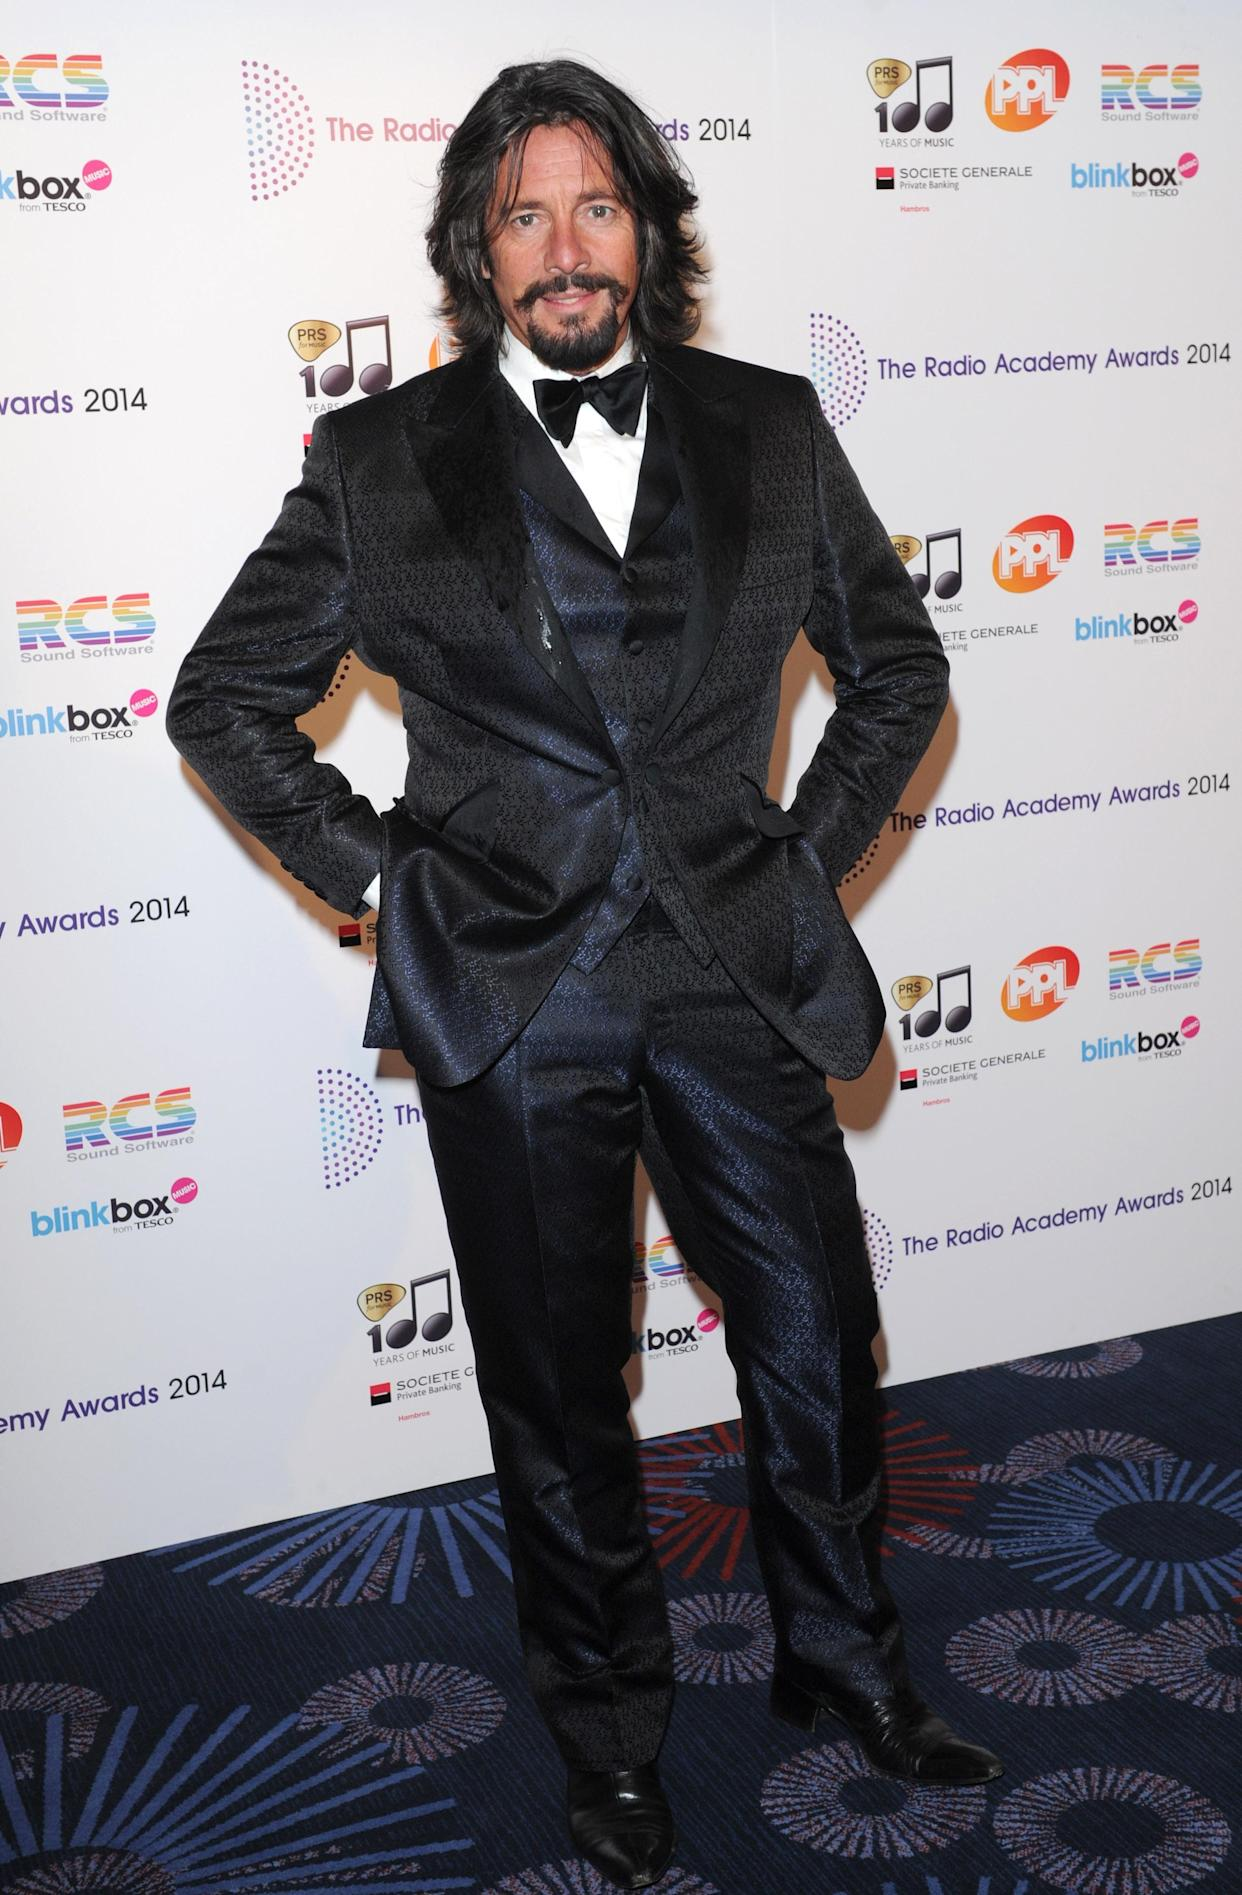 The Radio Academy Awards, Grosvenor House Hotel, London, Britain - 12 May 2014, Laurence Llewelyn-Bowen (Photo by Brian Rasic/Getty Images)